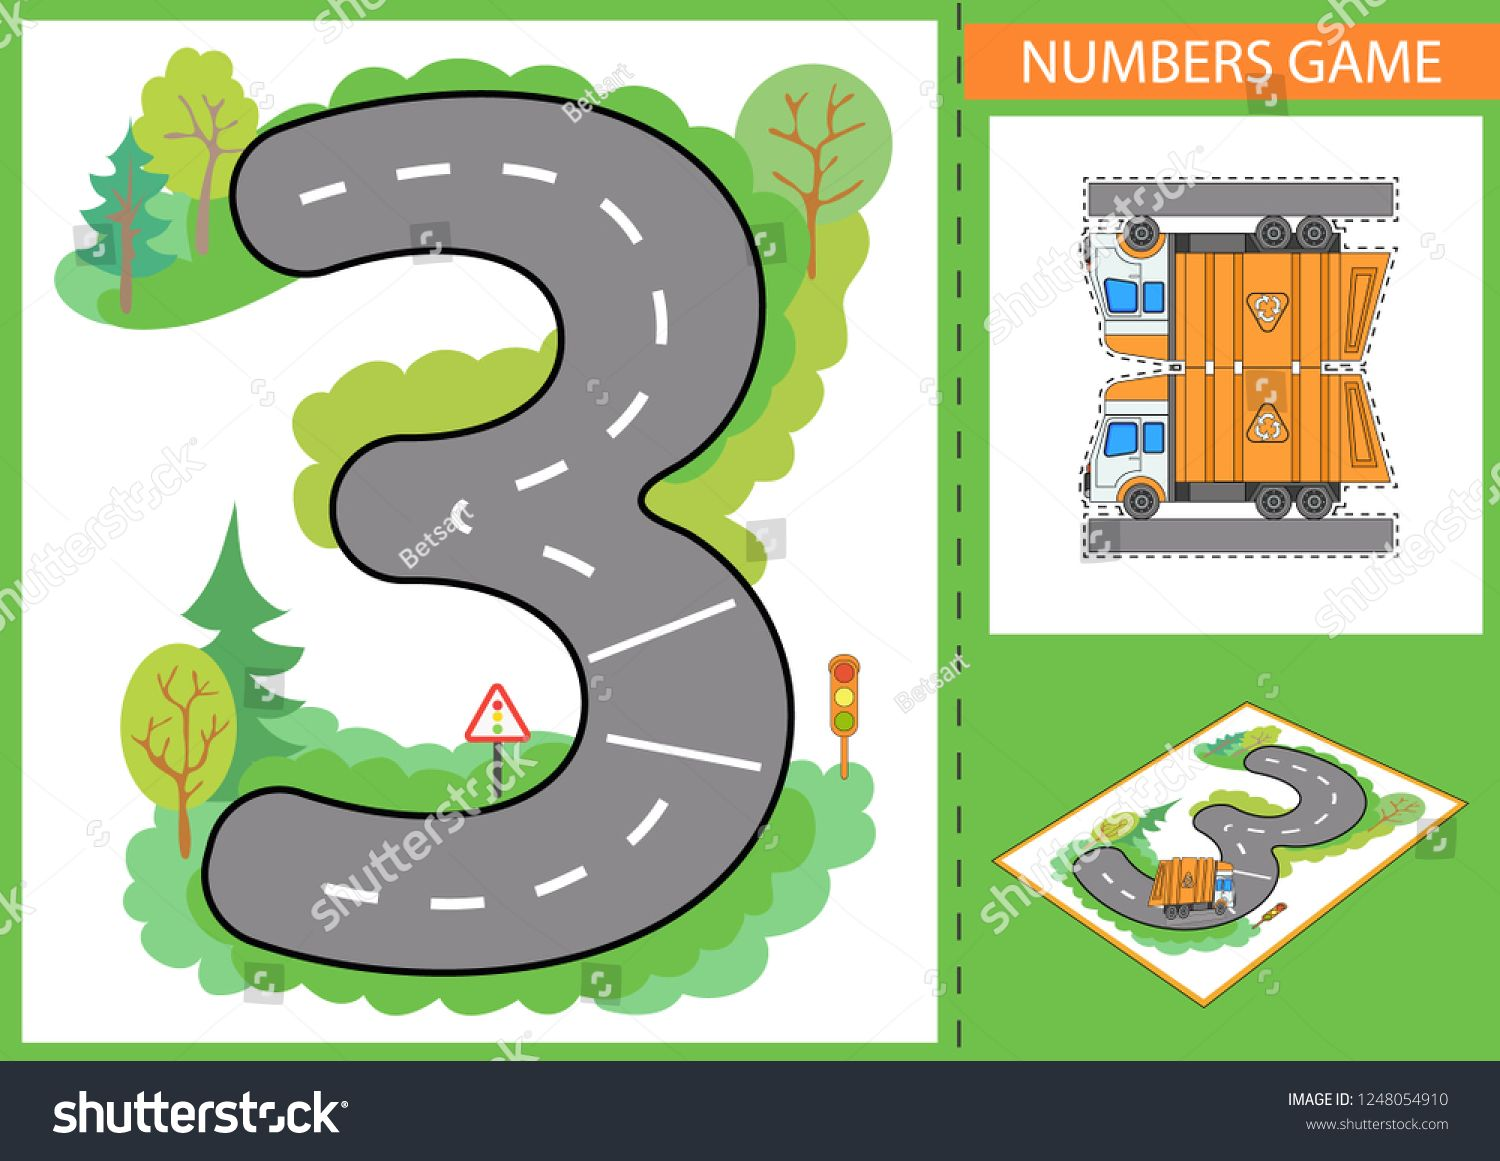 Write Numbers Children Game For Numerals Learn Kids Background With Road And Paper Garbage Truck Wallpaper For Chil Games For Kids Kids Background Road Kids